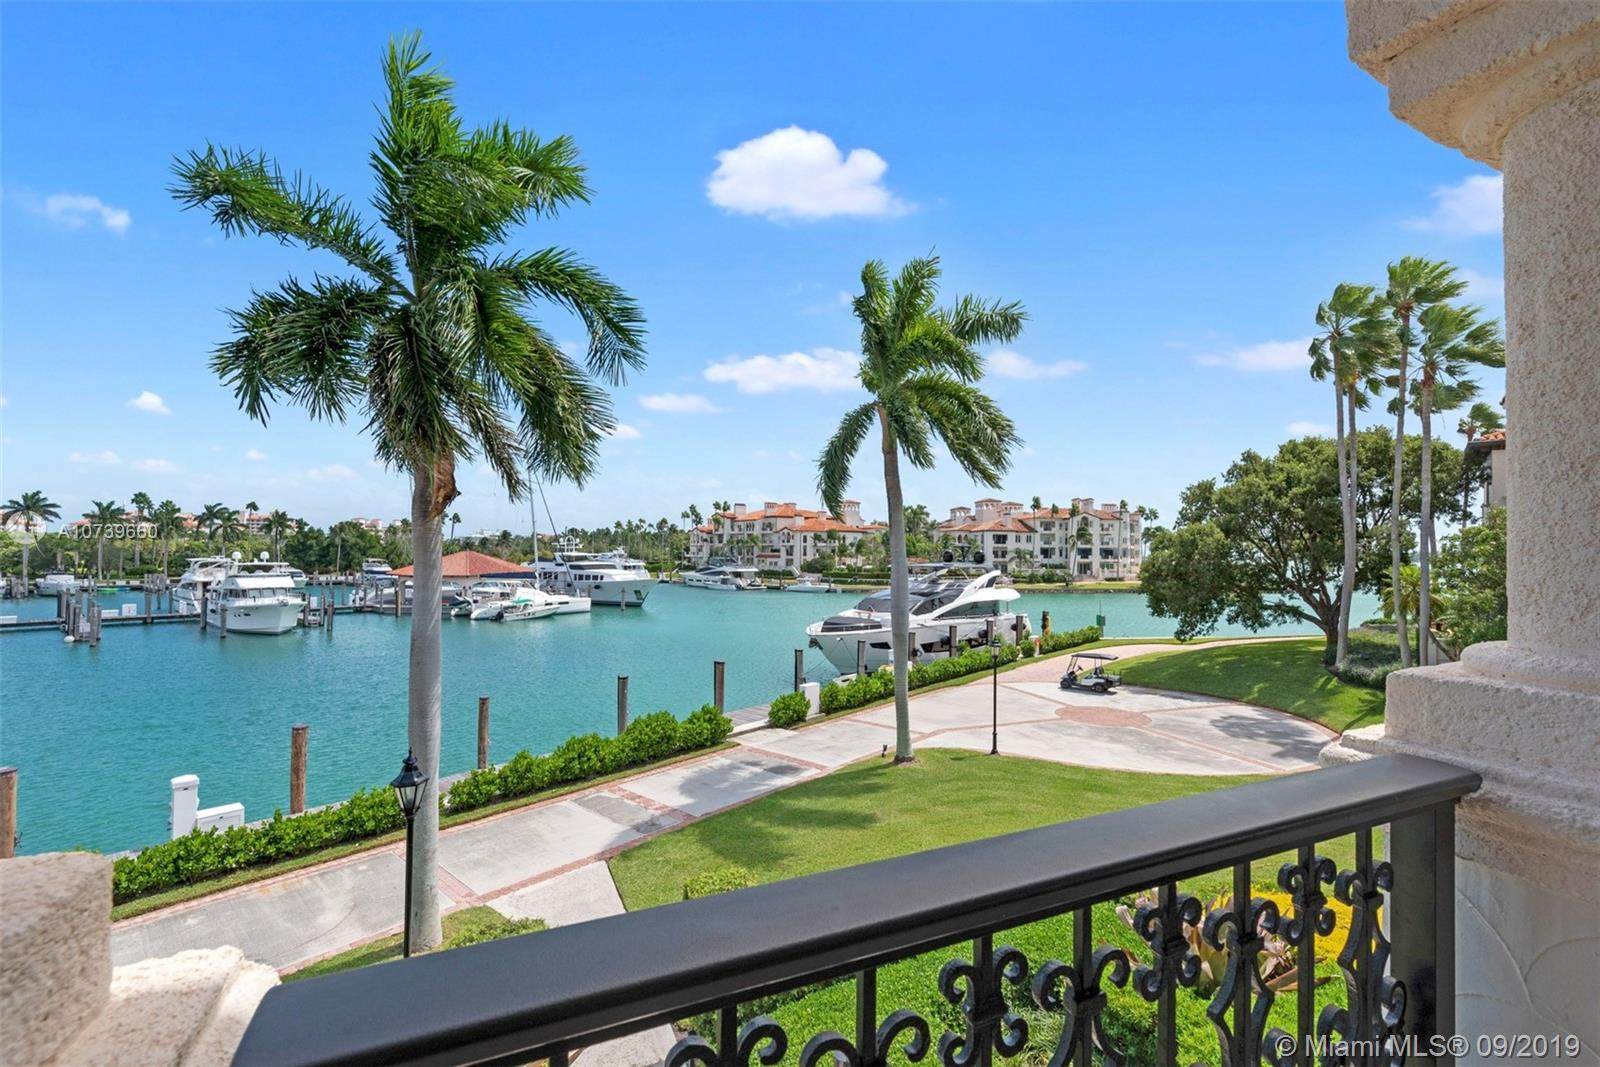 """Island Penthouse - Located within one of Fisher Islands most desired communities. One of only four on the entire island of similar position but each offers a slightly different view. Some features of this 2744 sq ft 3 bedroom 3.5 bath residence include a 14' wood beam vaulted ceiling, 4 terraces. Sale includes 2 storage units, 2 auto and 2 cart spaces. Fisher Island continues to be rated one of the richest zip codes in the US. Bringing the highest standards of living & quality of life to the lucky few that call it home. Private beaches, beach club, restaurants, 16 tennis courts, Pickle-ball, Pete Dye golf course, 2 deep water marinas, private school """"FIDS"""", grand spa and the list goes on & on."""